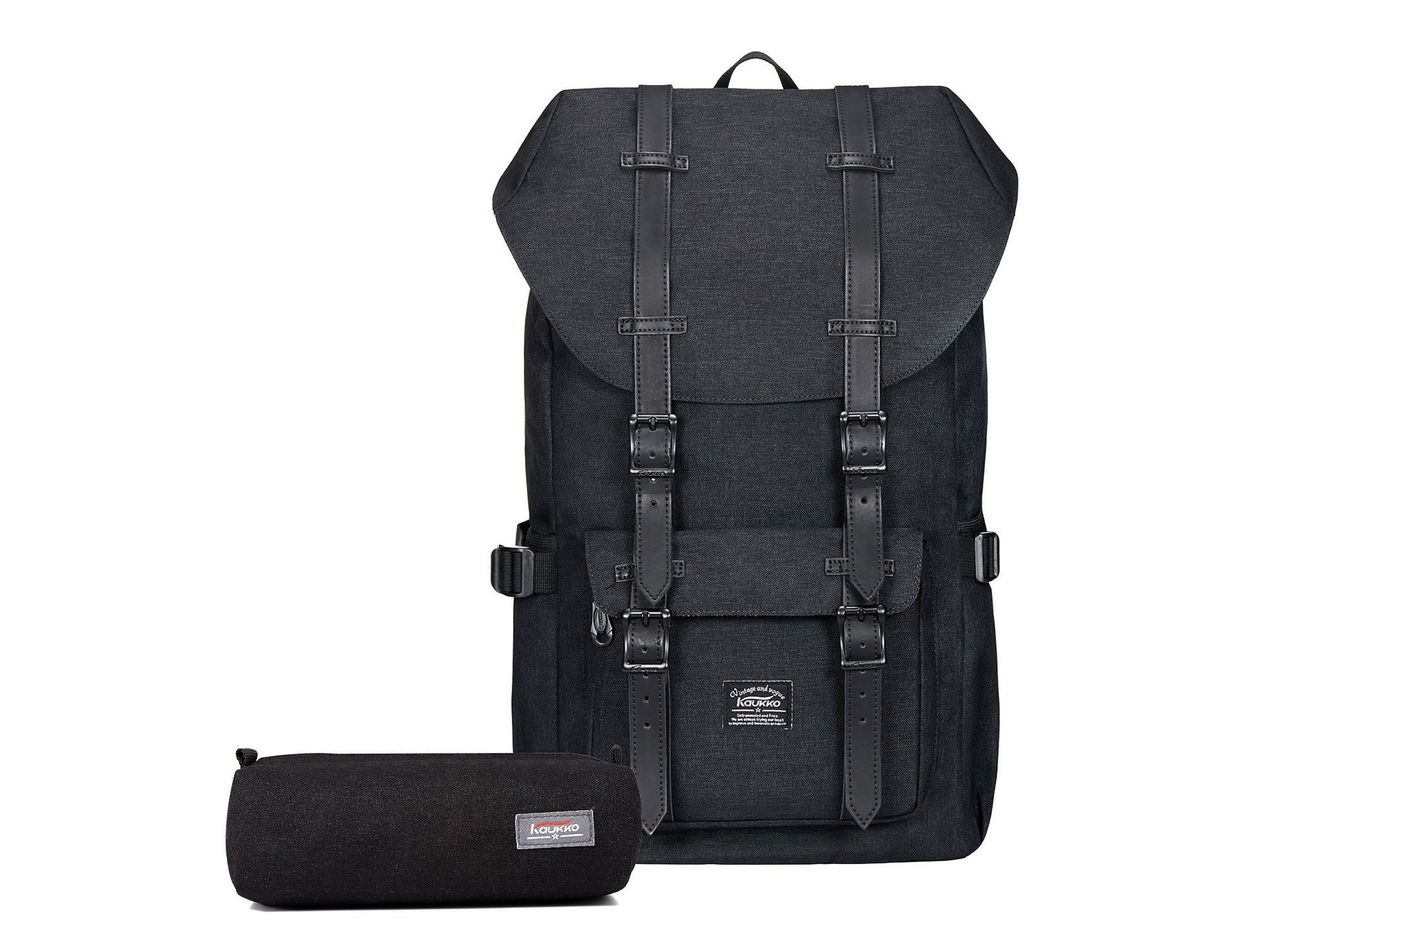 Kaukko Laptop Outdoor Backpack Fits 15